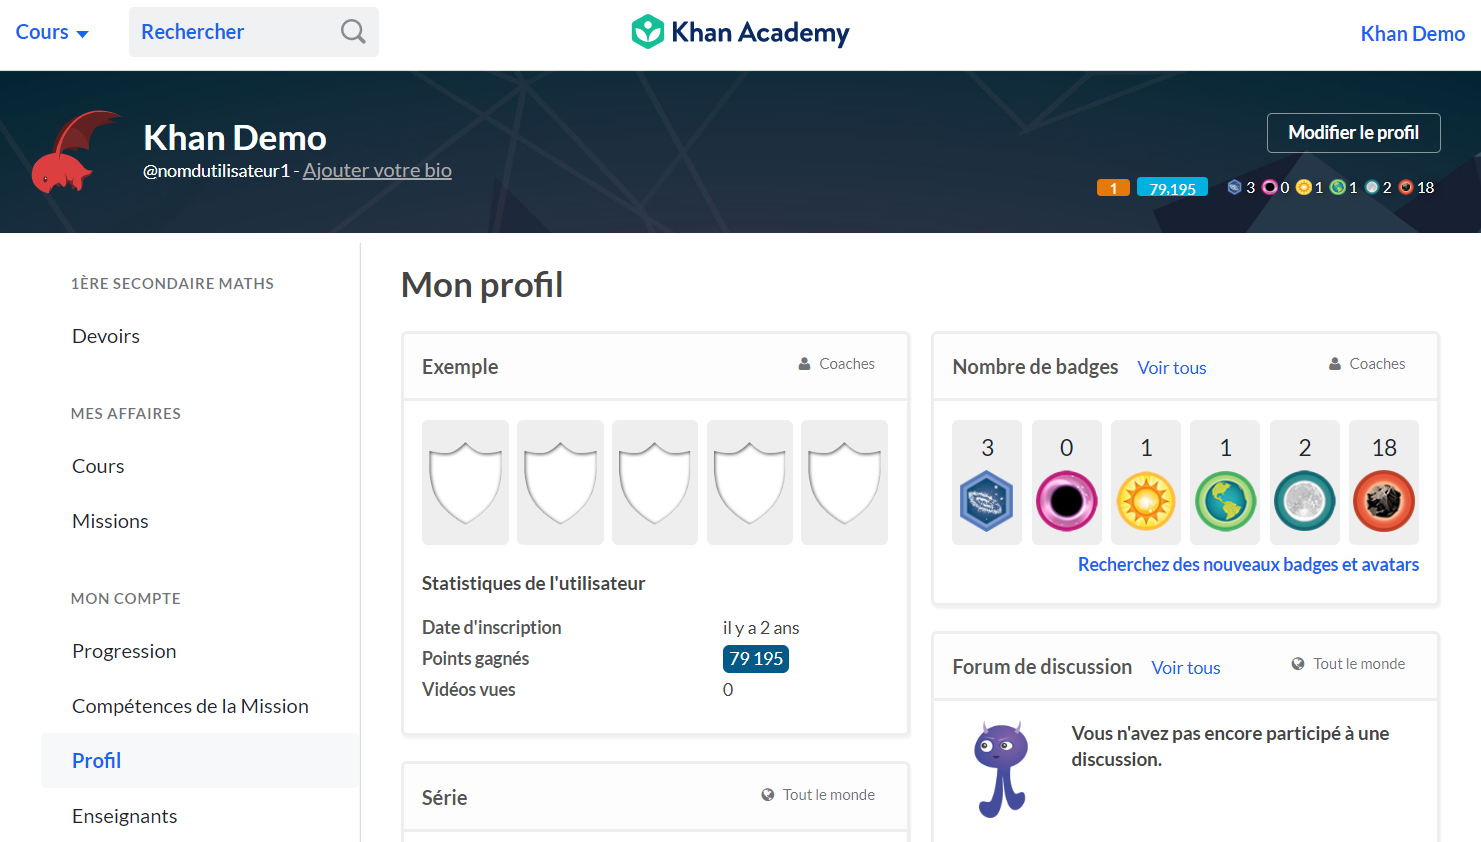 Logged_In_Home_Page_on_Khan_Academy.png